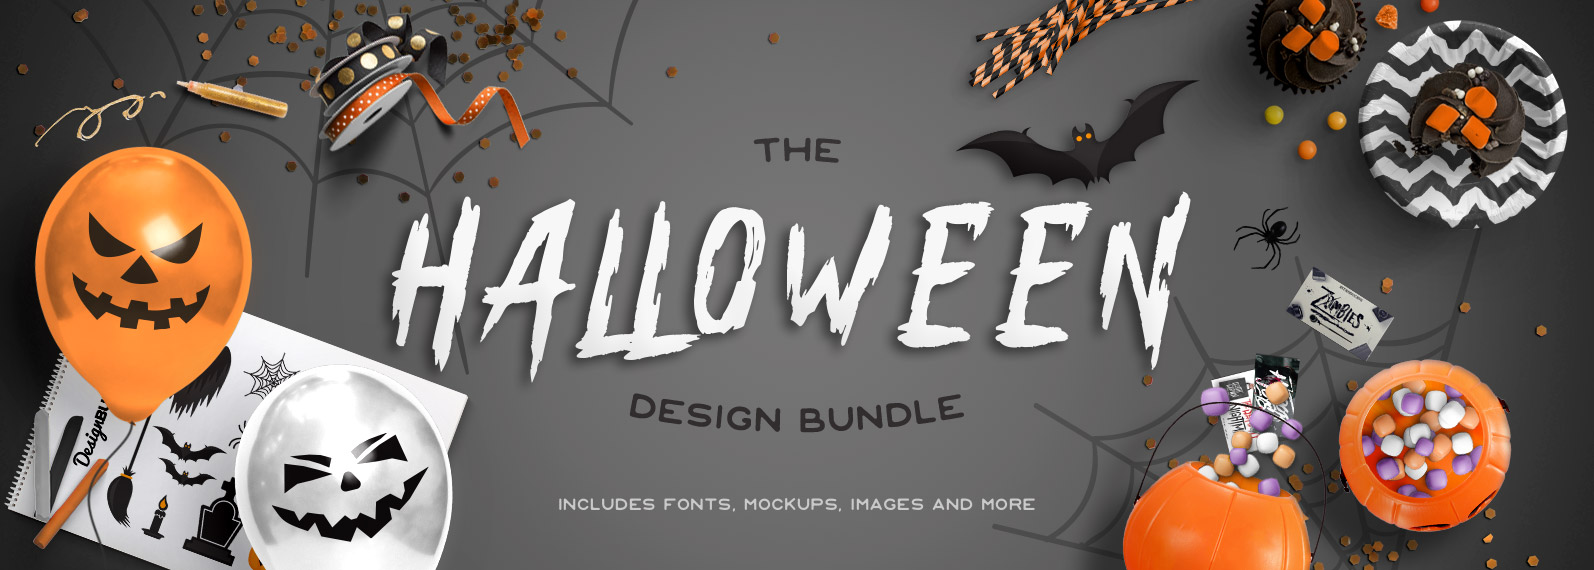 The Halloween Bundle Cover